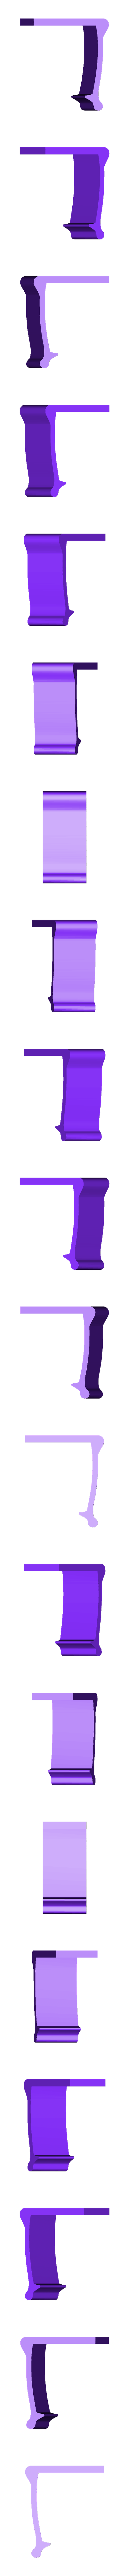 SNESTopHook.stl Download free STL file Modular SNES Game Wall Hangers (Super Nintendo) UPDATED 2015-08-24 • 3D printing object, tonyyoungblood